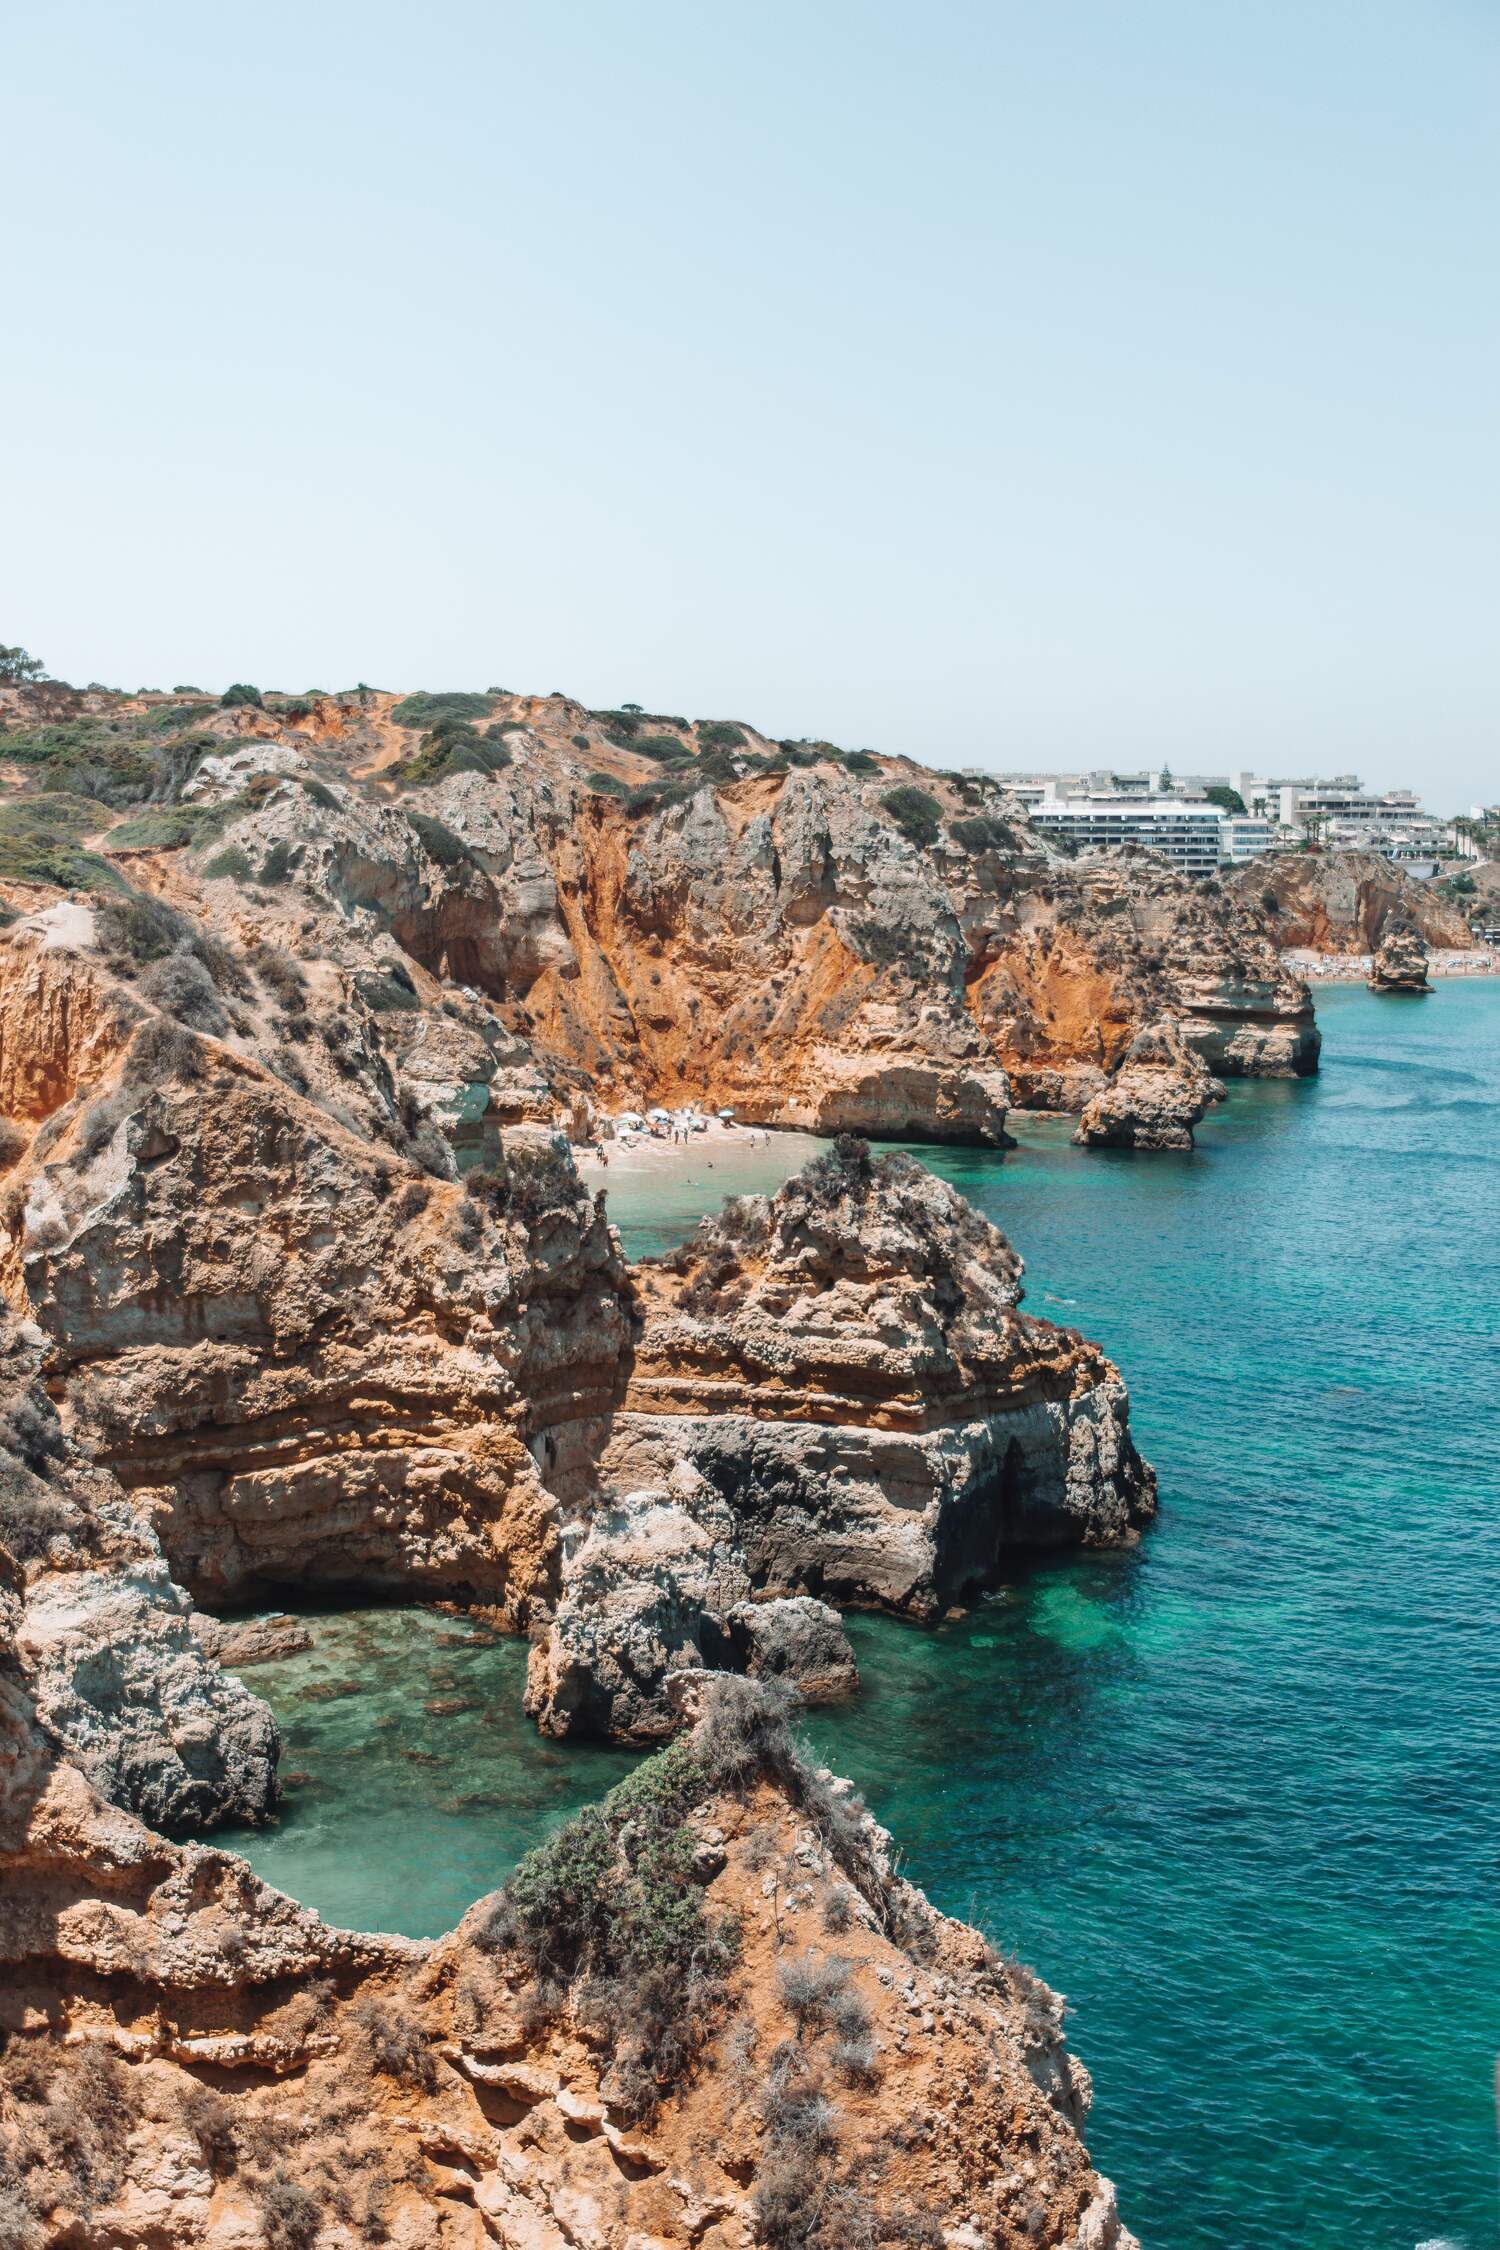 The algarve coast is a must visit location when venturing on a Portugal road trip